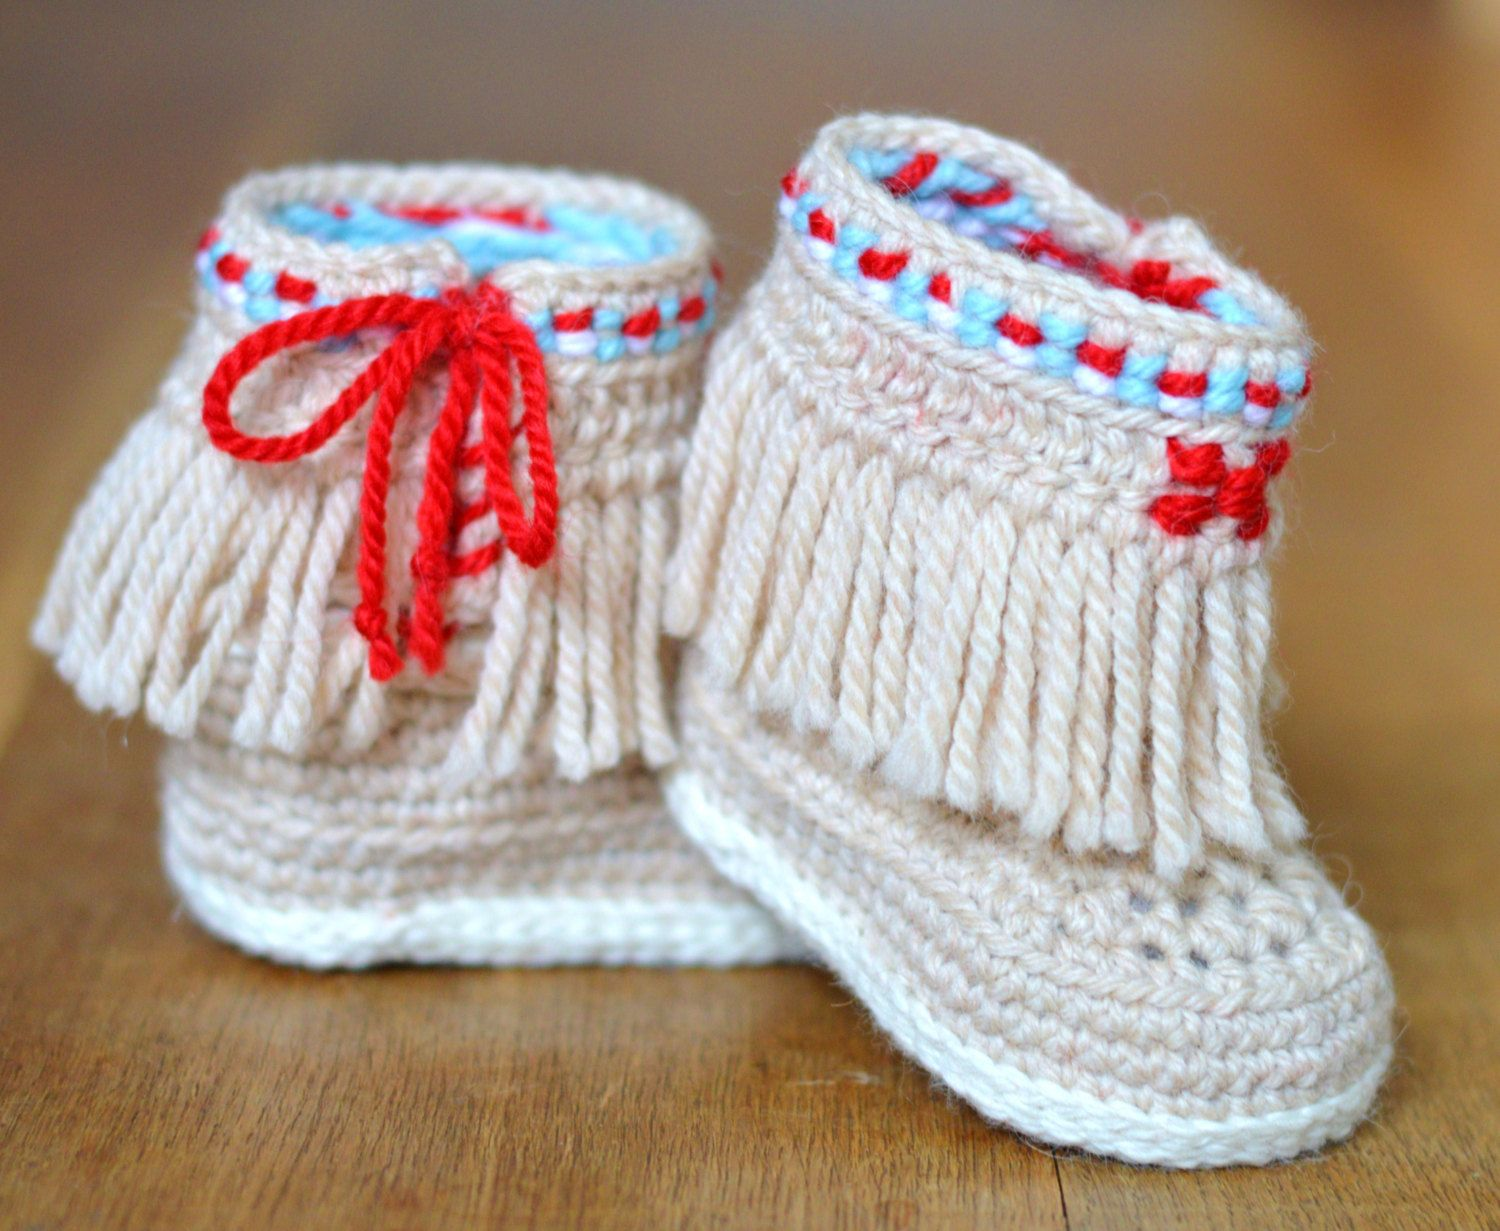 Crochet pattern baby booties fringe moccasins 3 sizes photo native crochet pattern baby booties fringe moccasins 3 sizes photo native american style baby shoes pattern instant bankloansurffo Choice Image